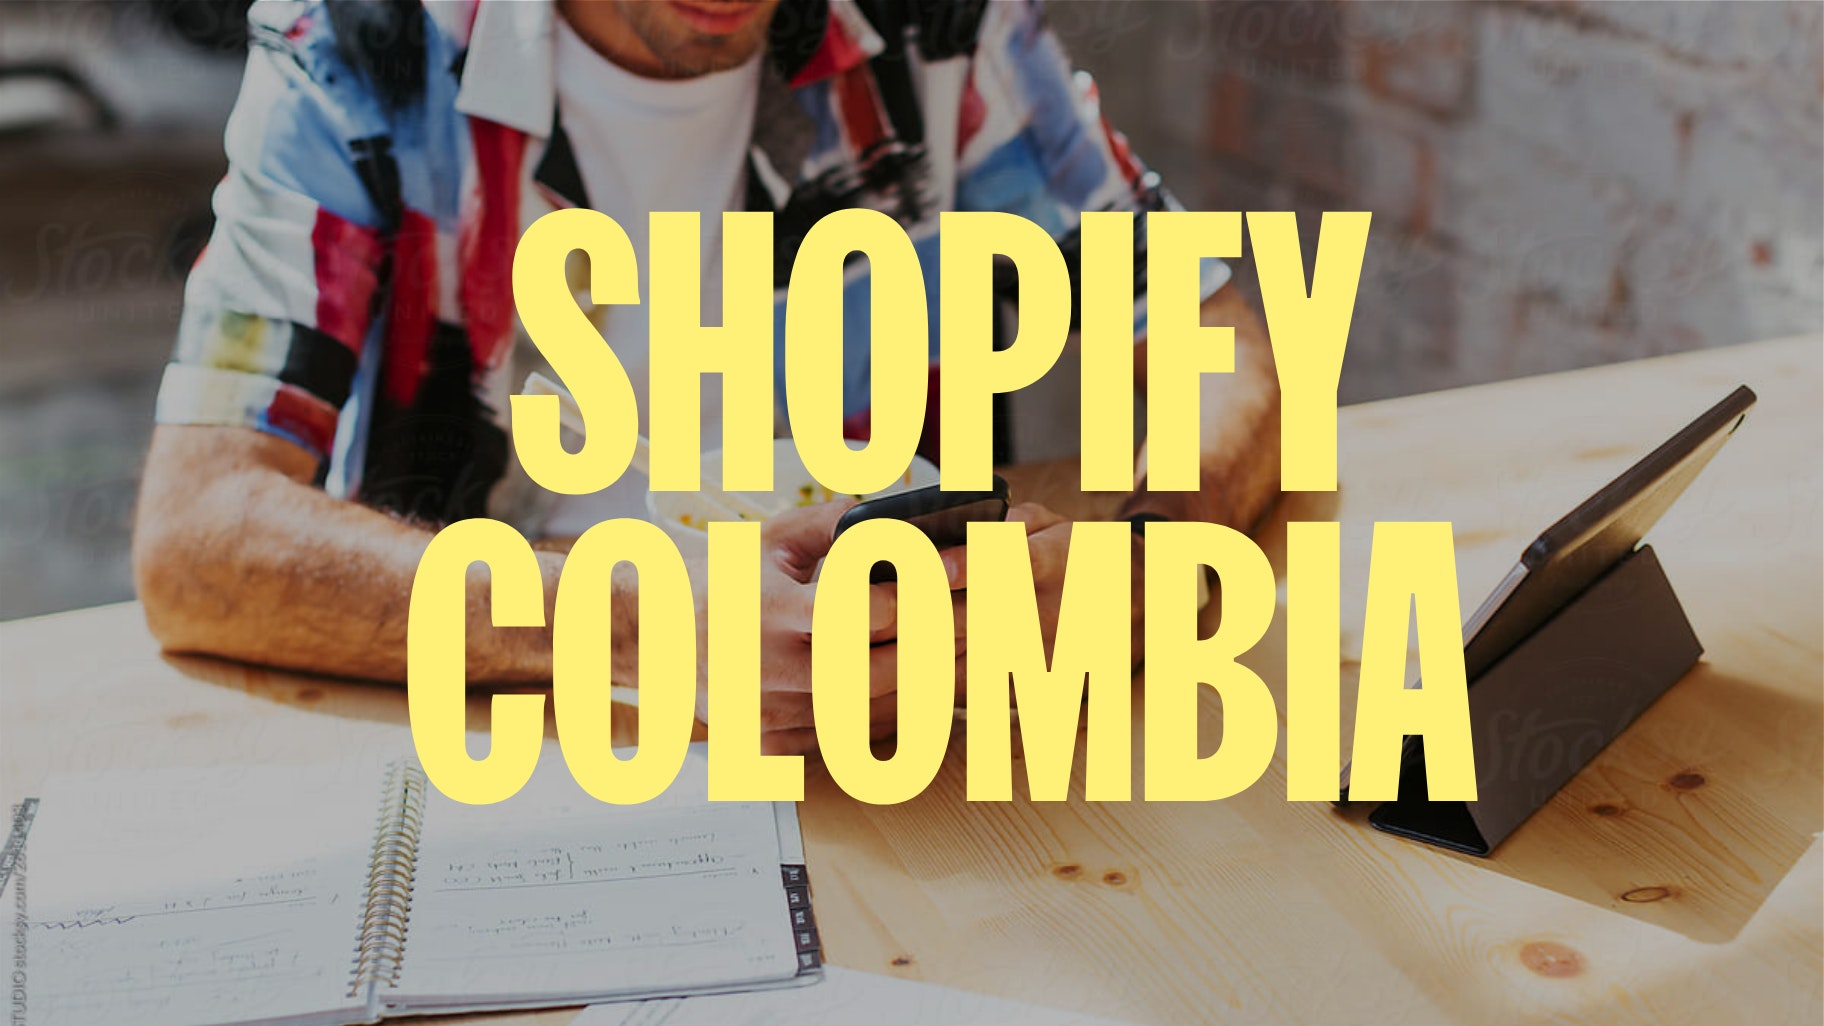 shopify colombia